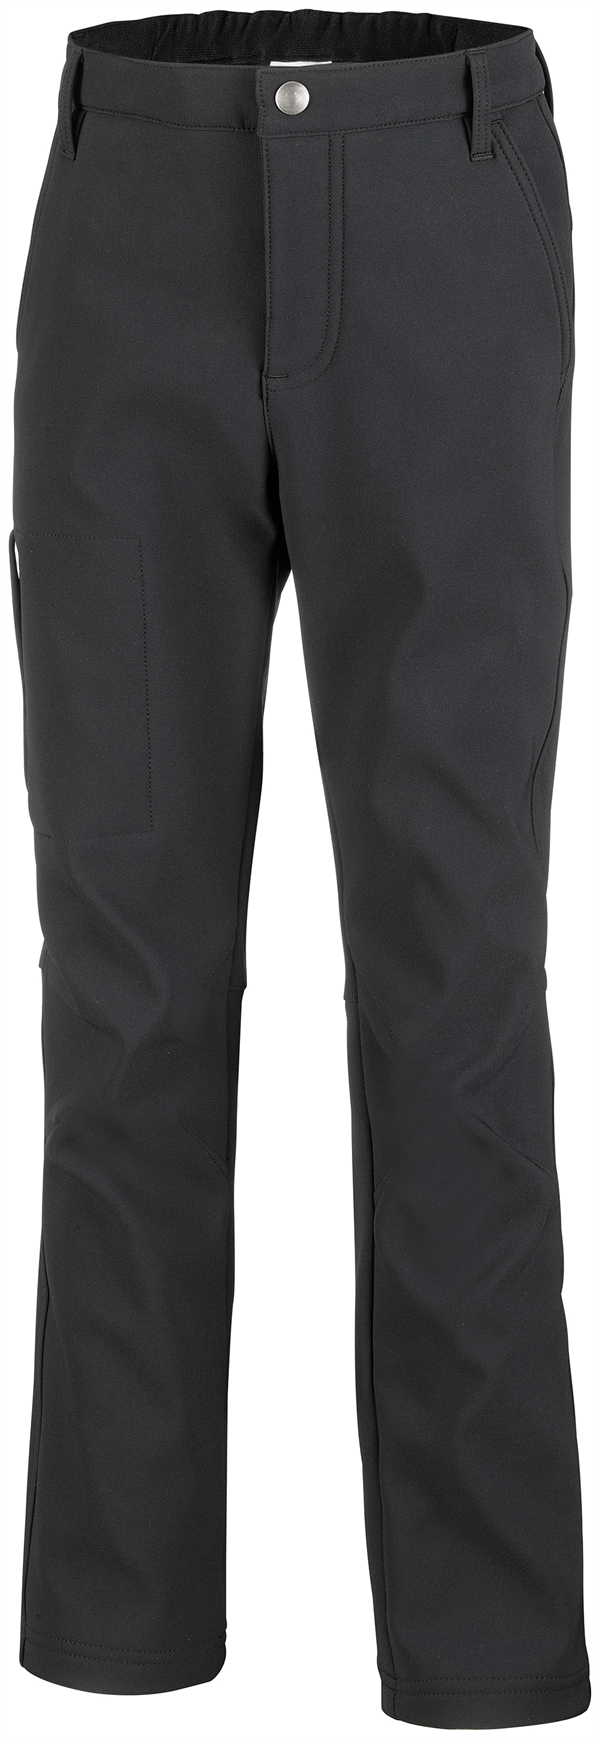 Columbia Maxtrail Pant Youth